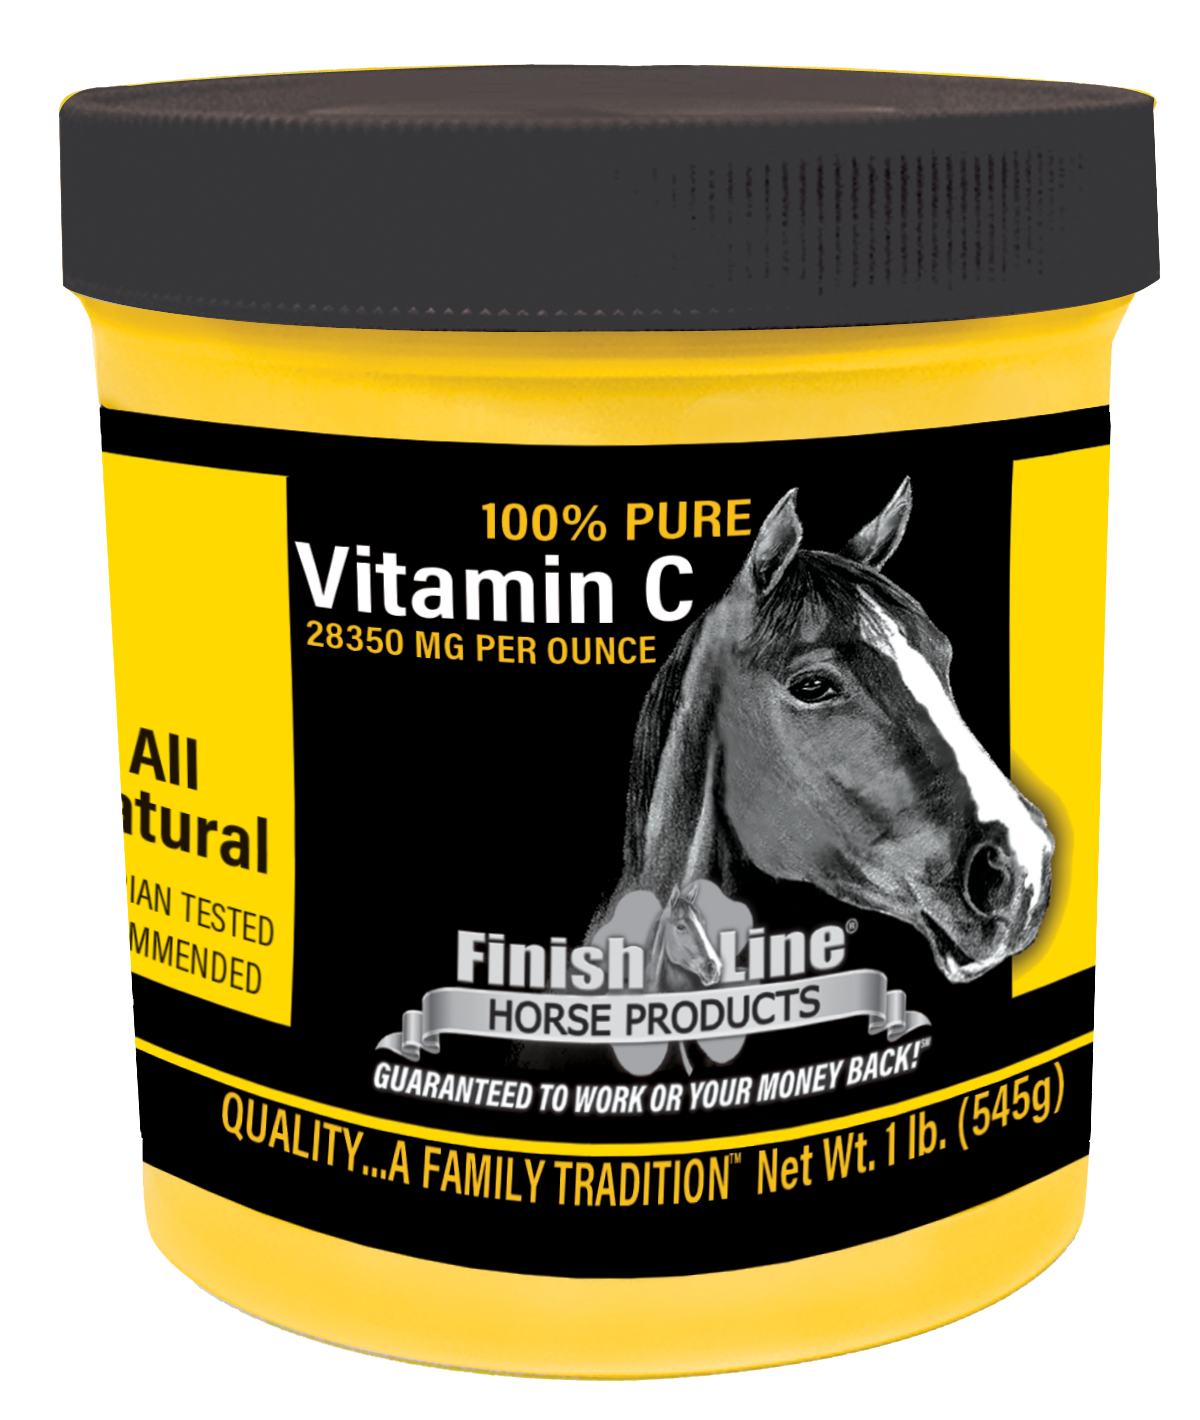 Finish Line Vitamin C Pure